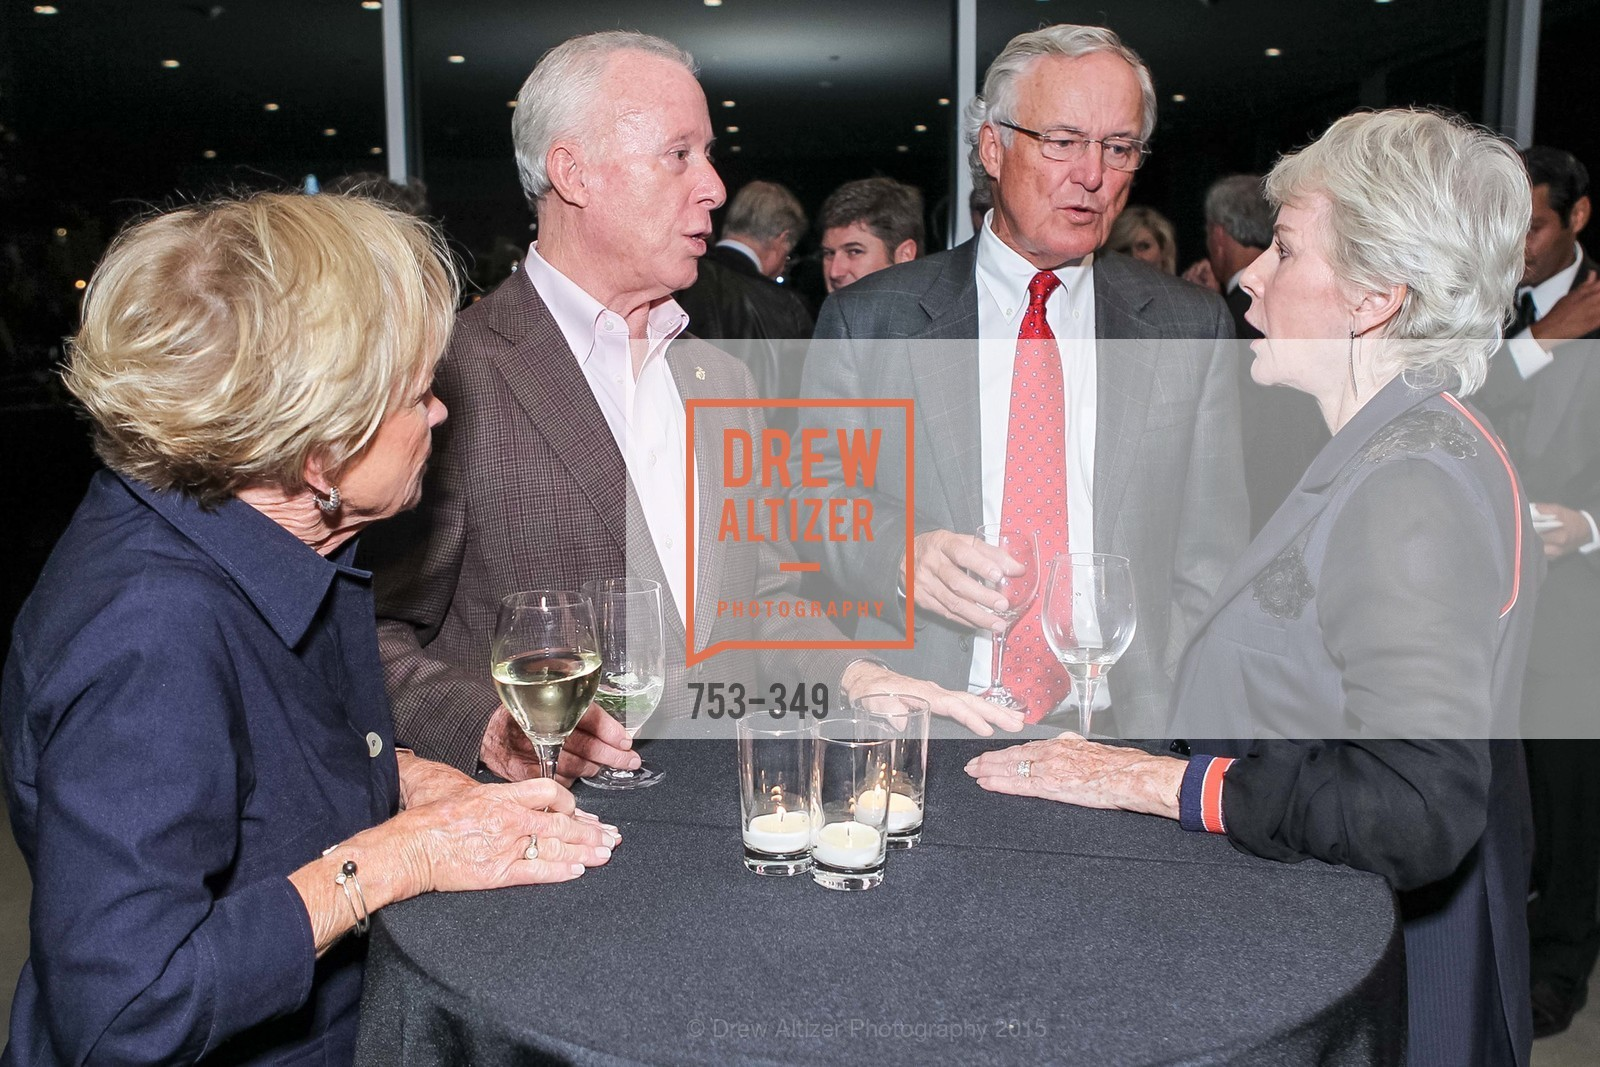 Barbara Morris, Stephen Doyle, Bill Morris, Cocktails on the Pier- A BASIC Fund Thank You, Pier 24 Photography. 24 Pier The Embarcadero, October 8th, 2015,Drew Altizer, Drew Altizer Photography, full-service agency, private events, San Francisco photographer, photographer california